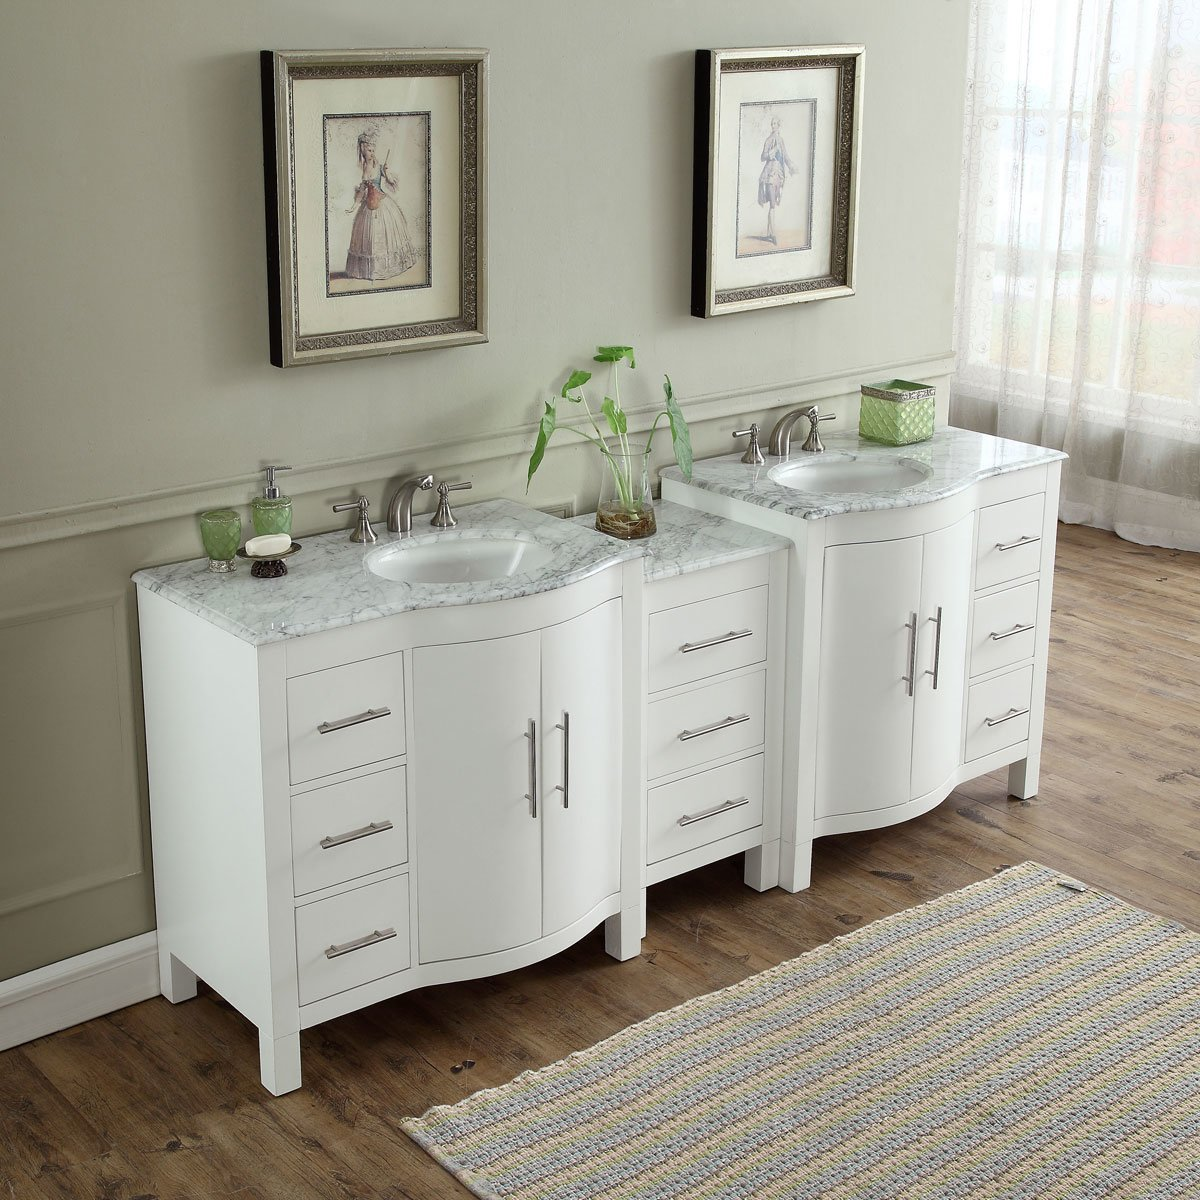 two sinks in bathroom 89 inch sink contemporary bathroom vanity white 21071